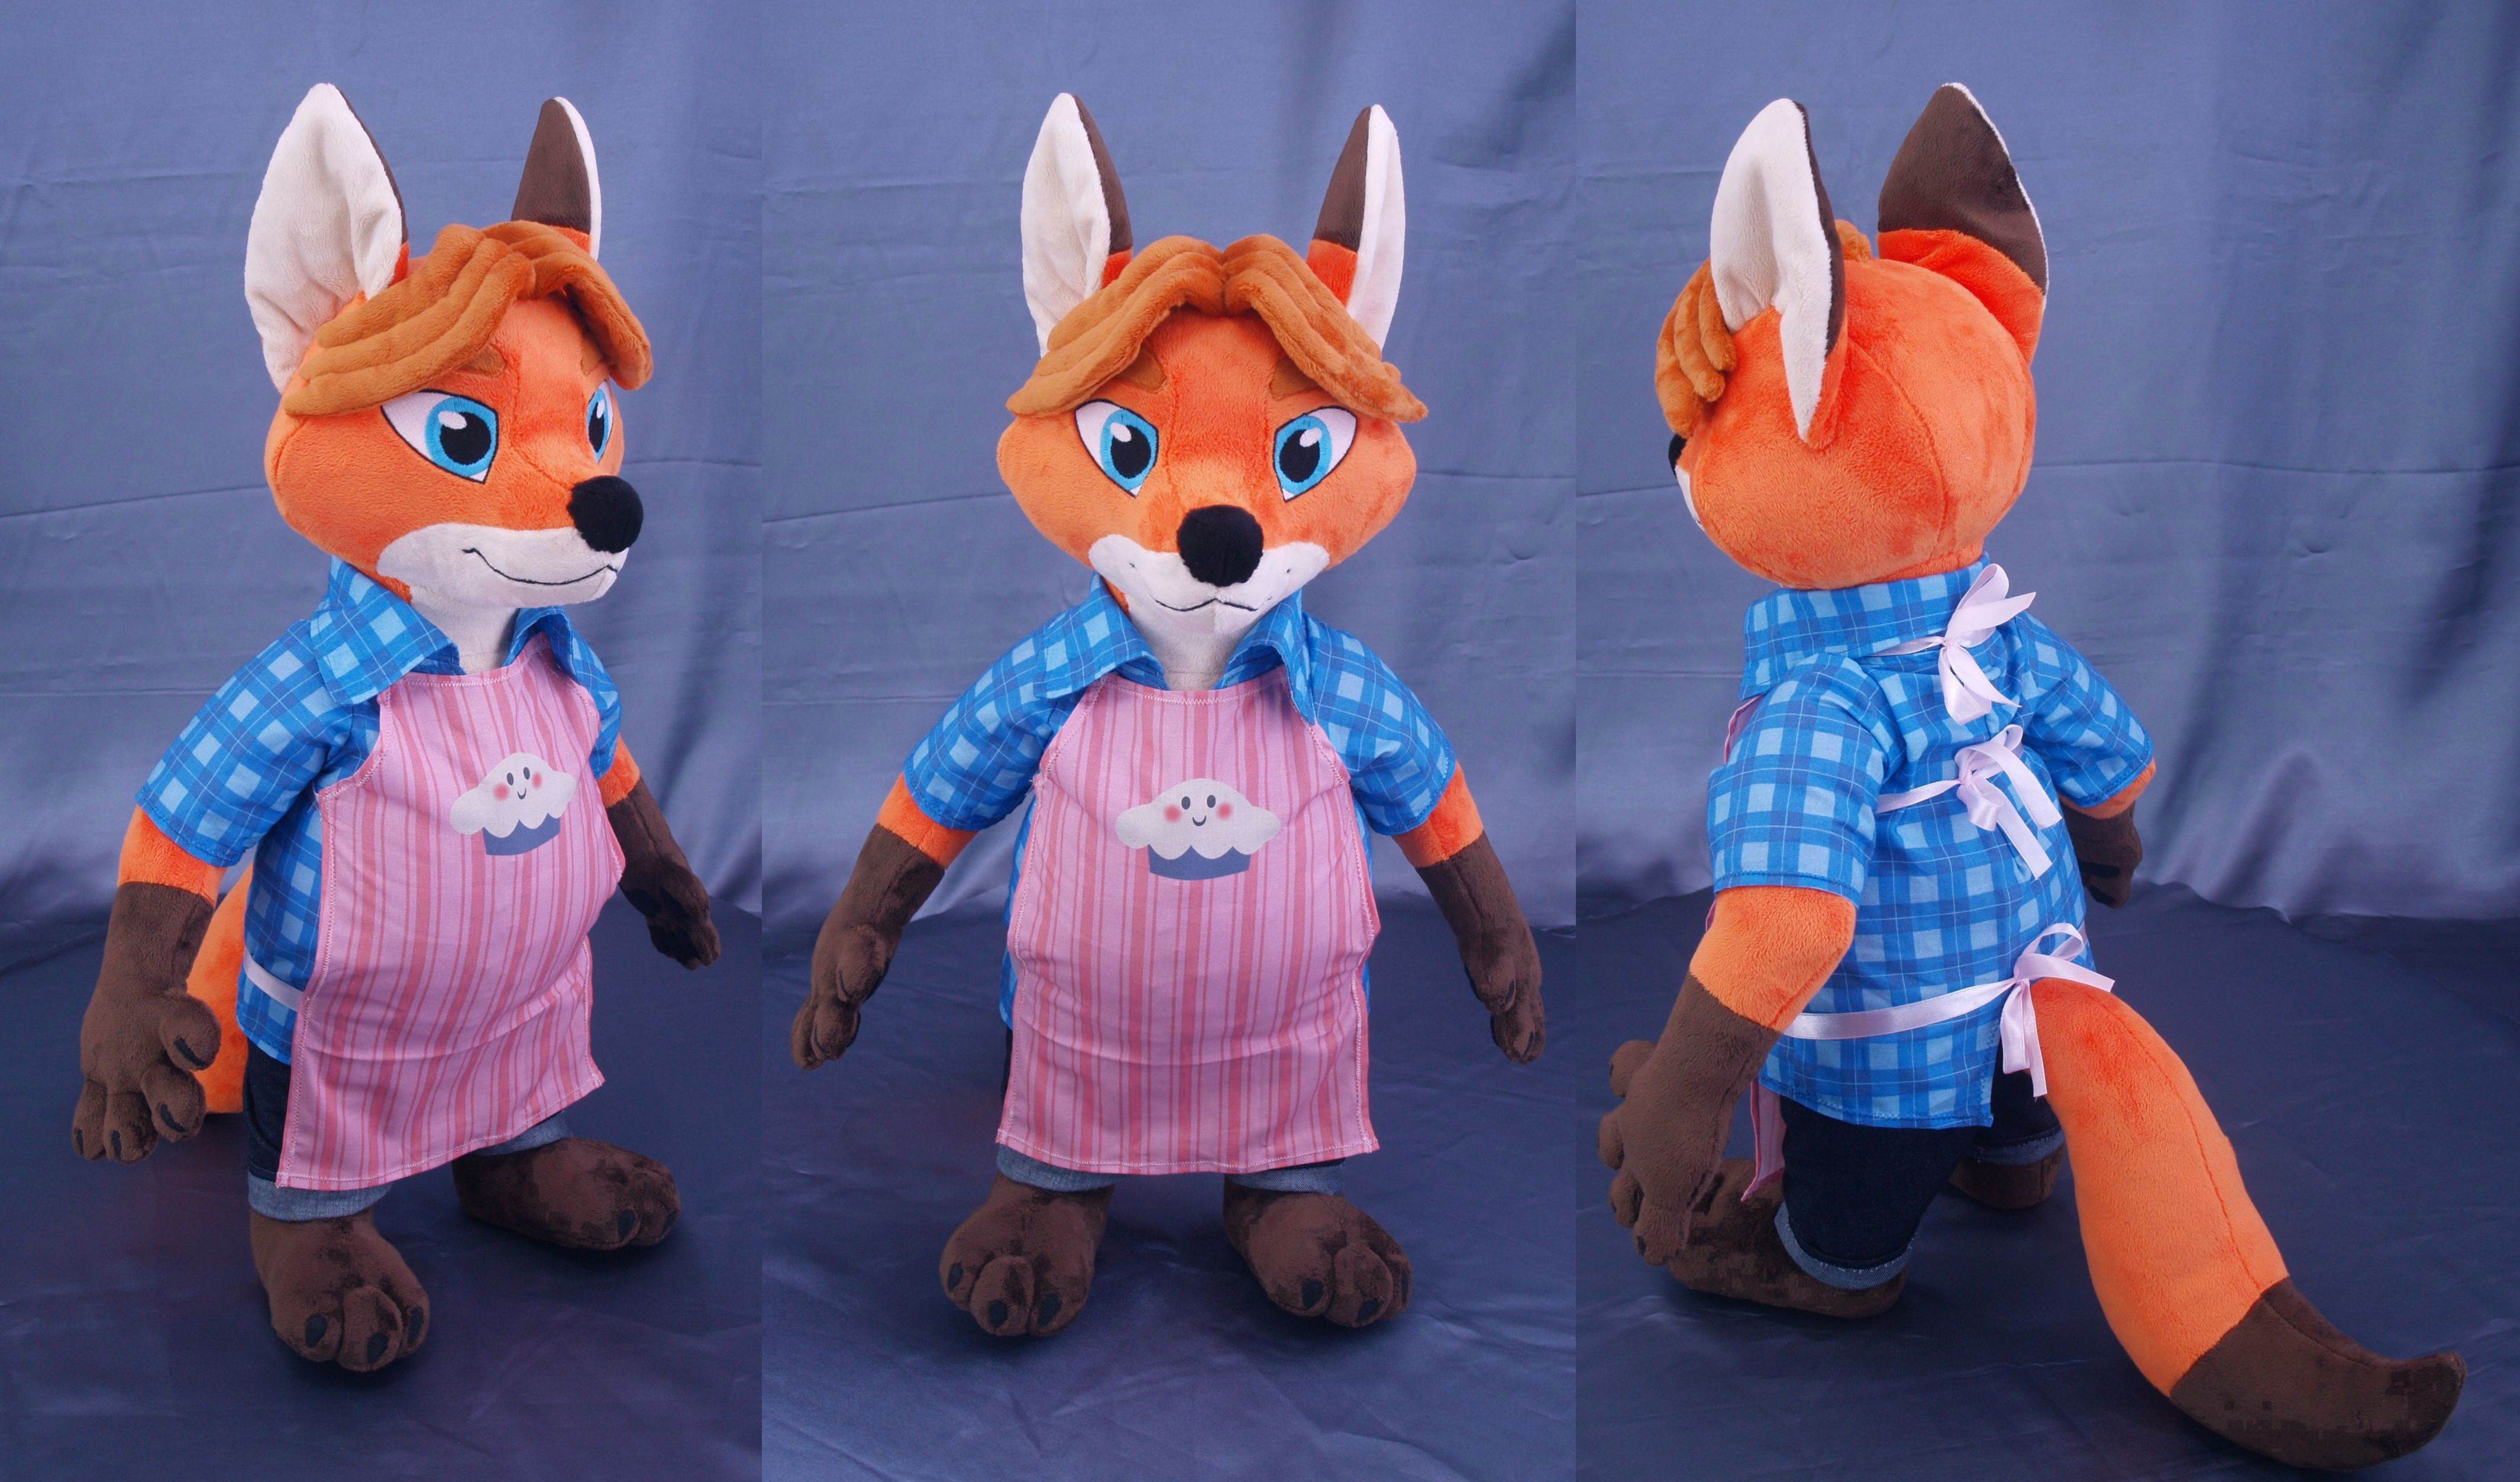 gideon_grey_from_zootopia_plushie_by_ada